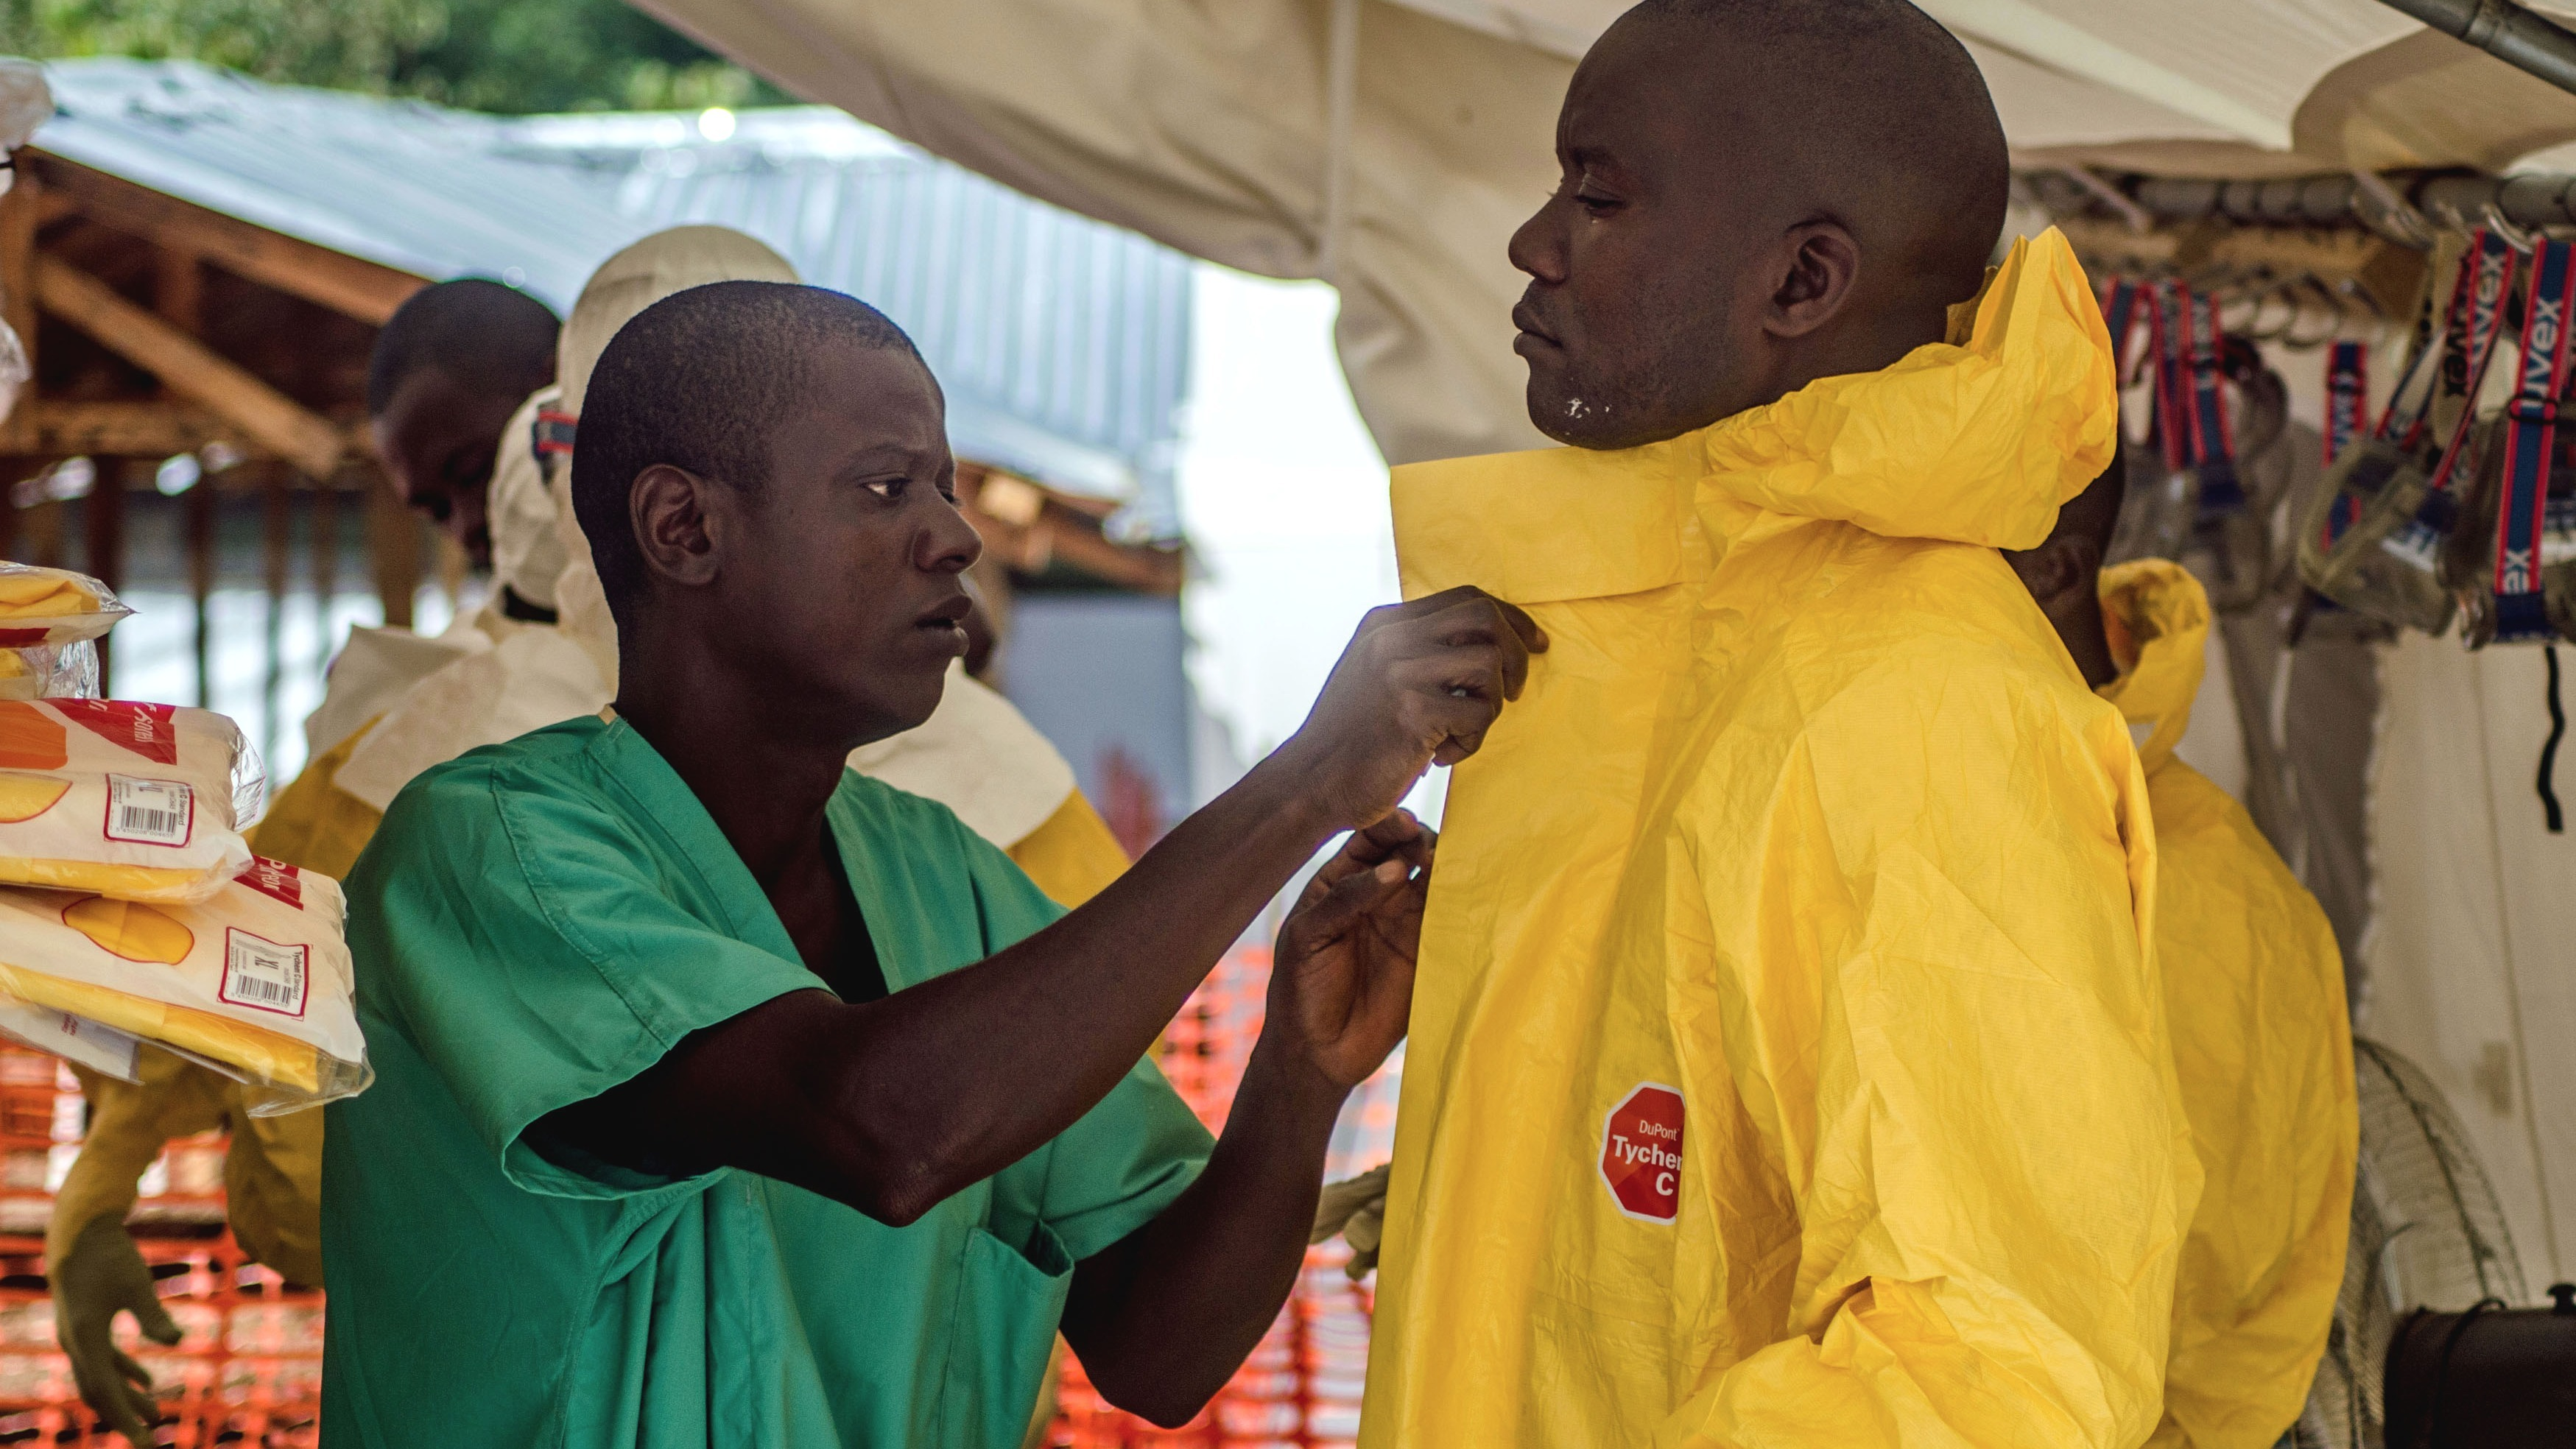 An MSF health worker is dressed in a protective suit before entering the isolation ward at their Kailahun Ebola treatment centre.